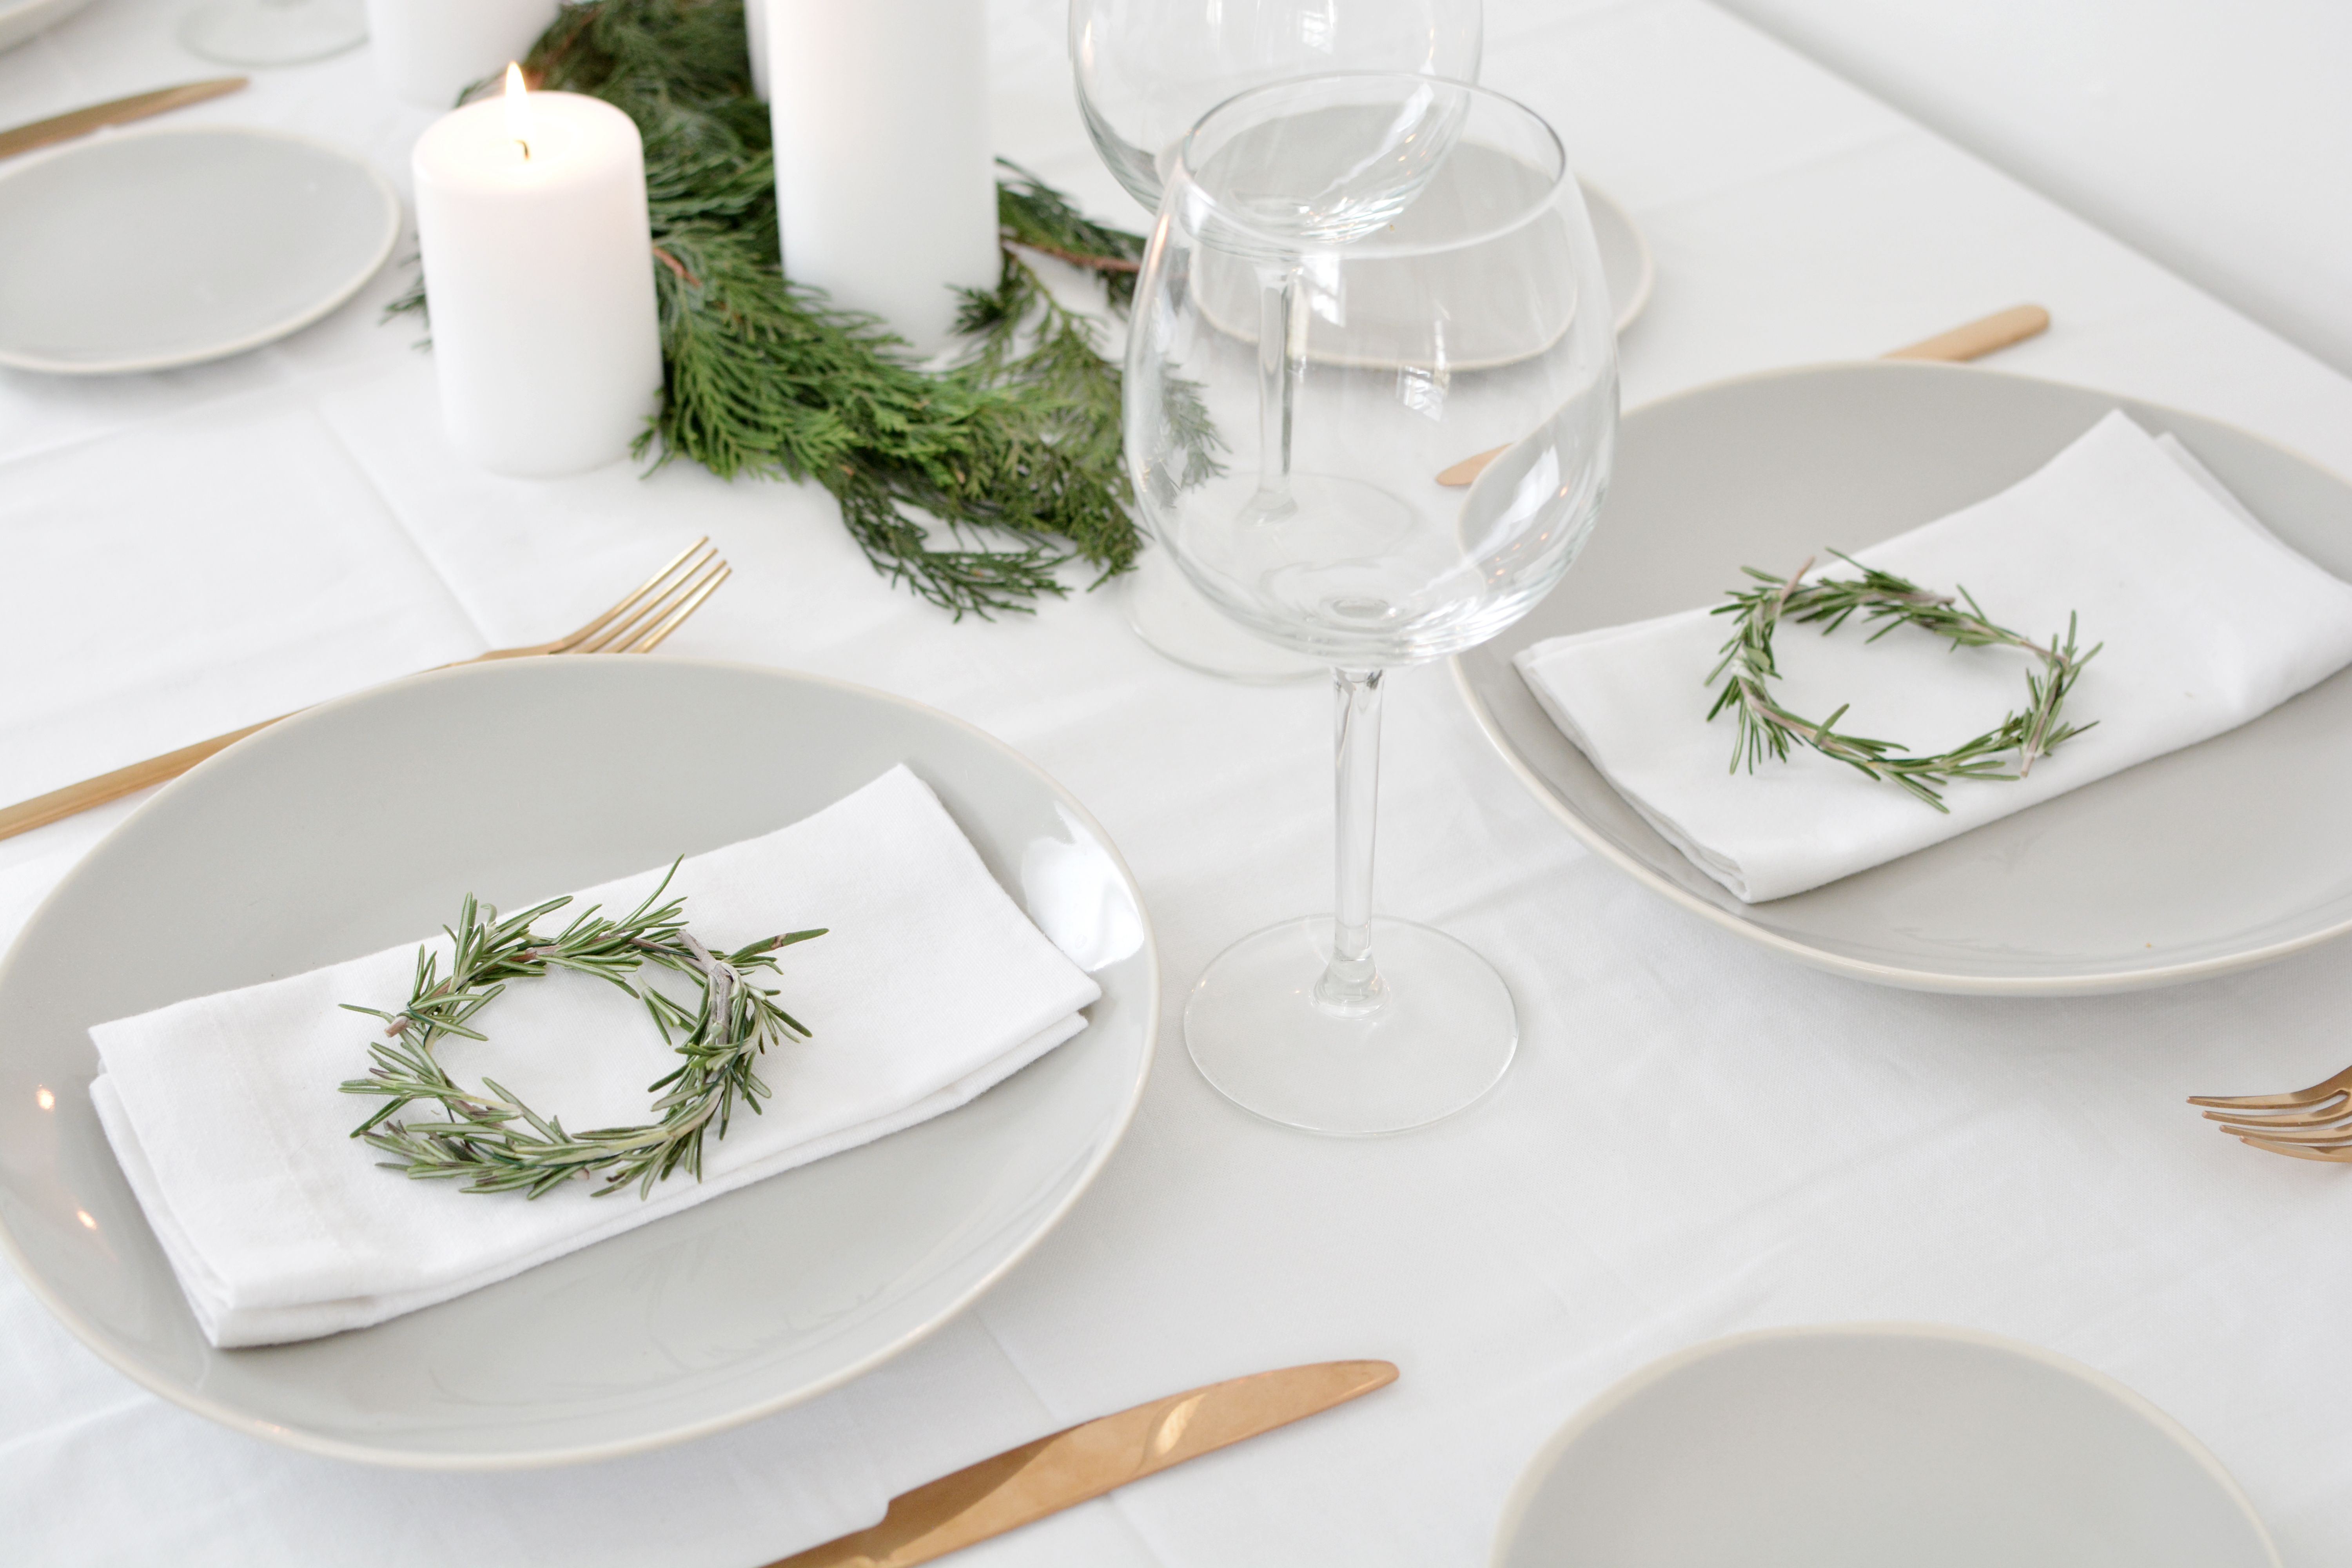 Decorate Your Holiday Table With These Mini Diy Wreaths Using Rosemary Wedding Table Decorations Diy Christmas Table Decorations Diy Wedding Table Decorations Centerpieces